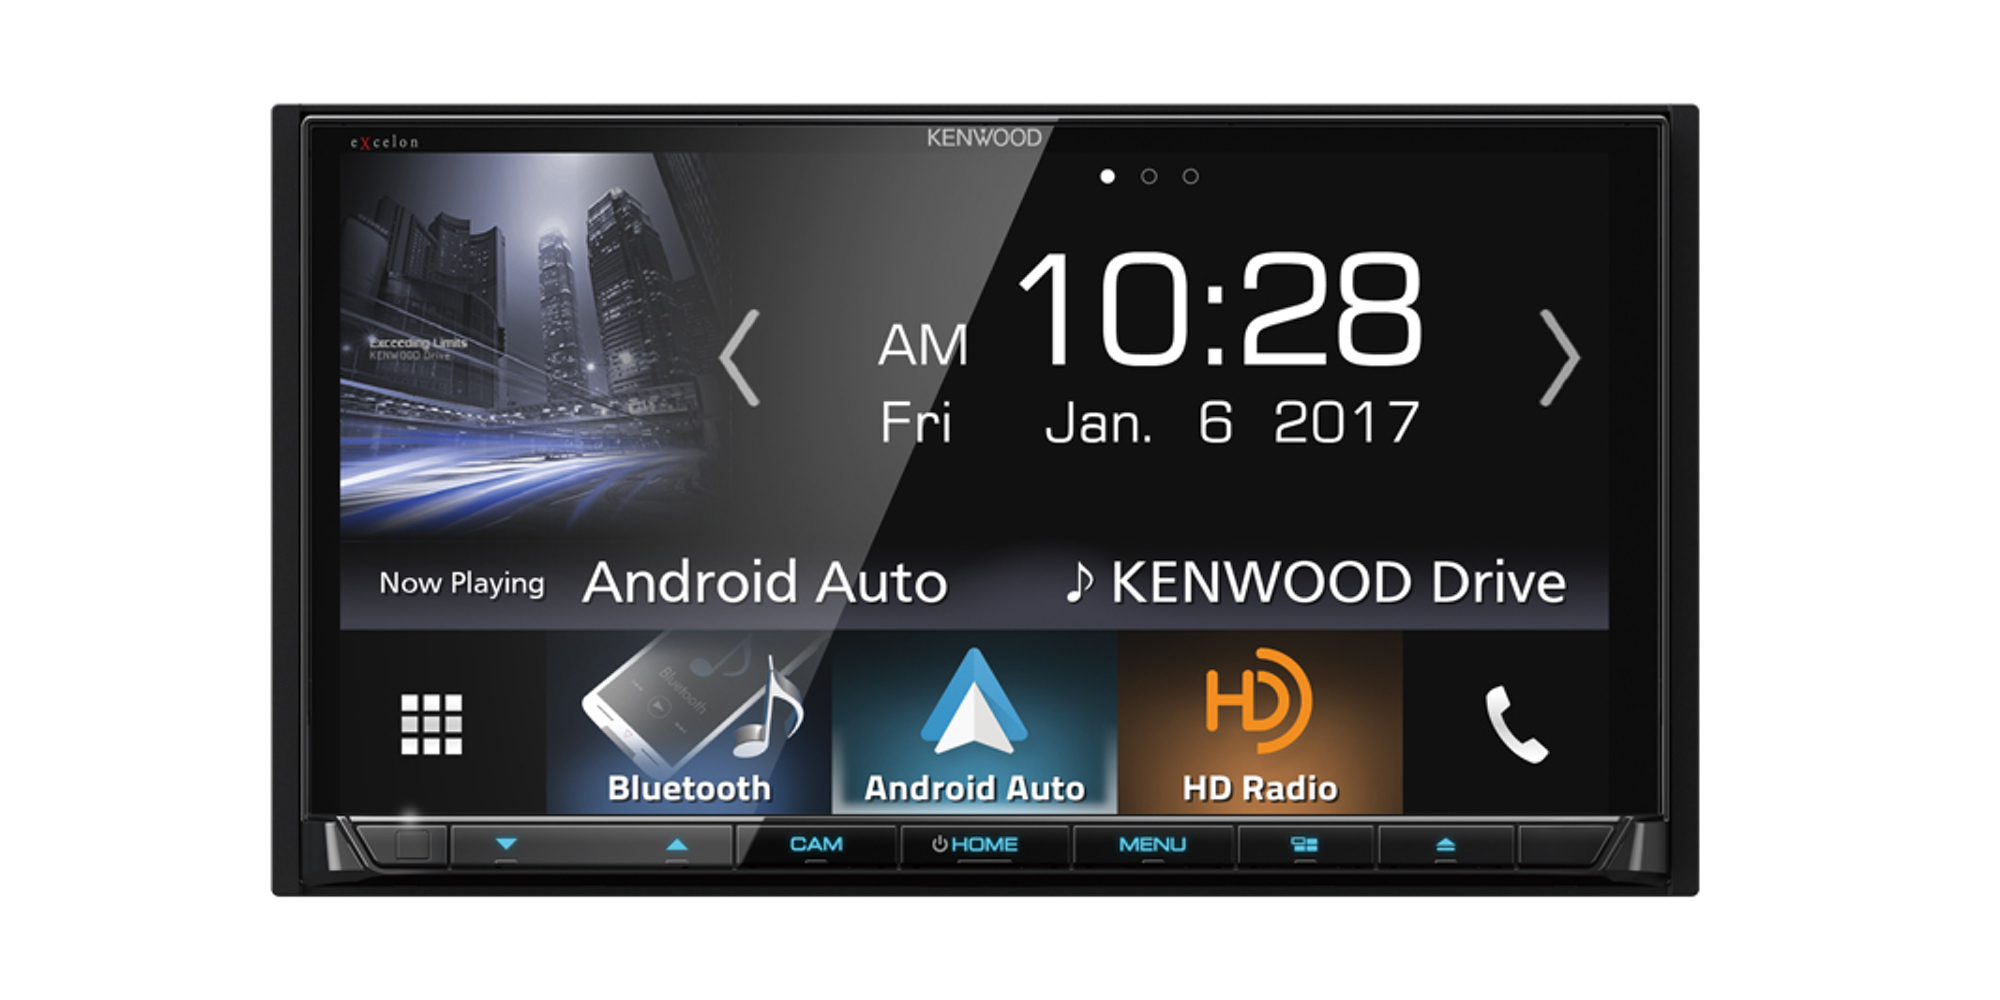 Kenwood's 7-inch In-Dash Receiver brings CarPlay + Android Auto to your ride for $374 (Reg. $450)